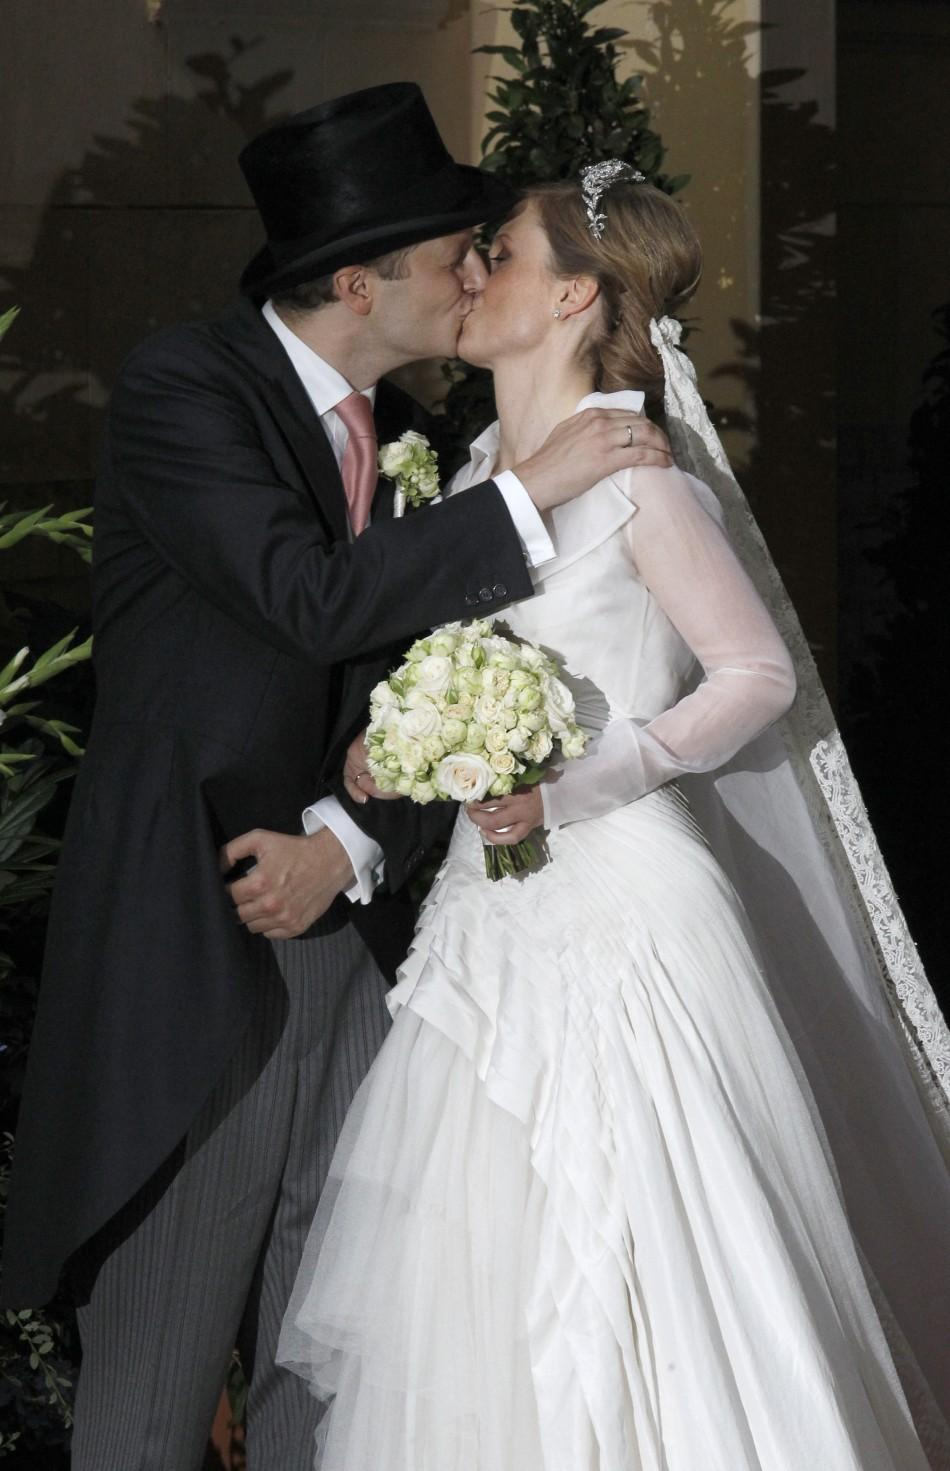 German royal wedding prince georg and princess sophie for What to do with old wedding dress after divorce